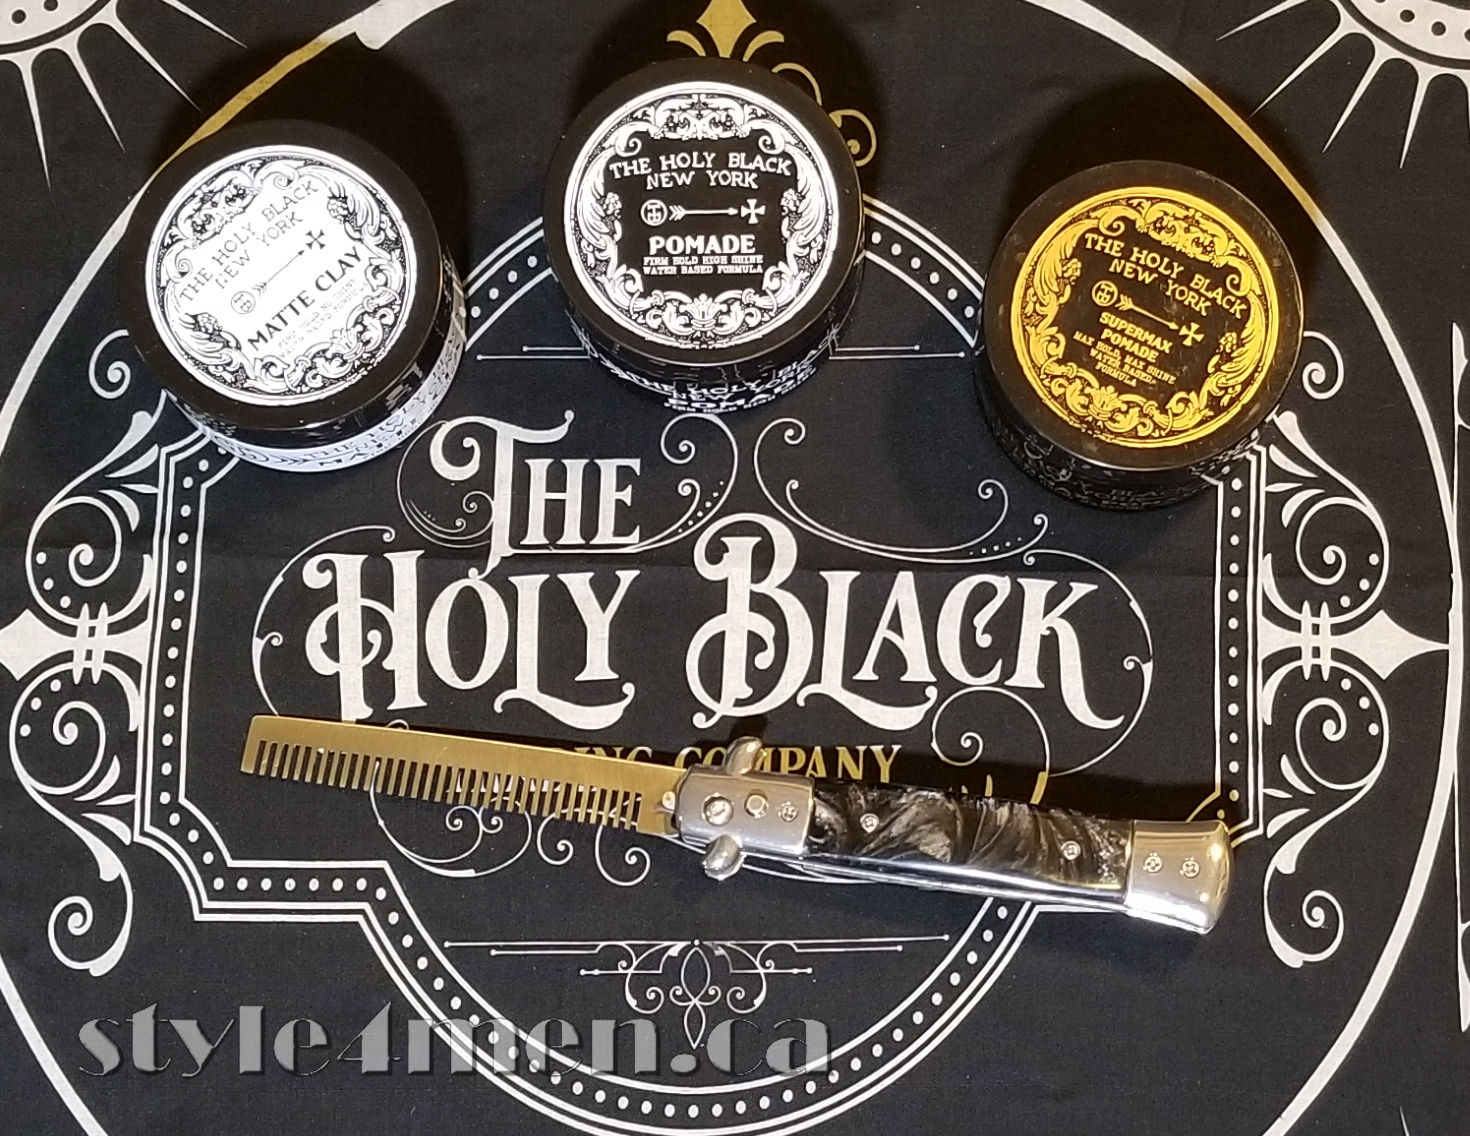 The Holy Black